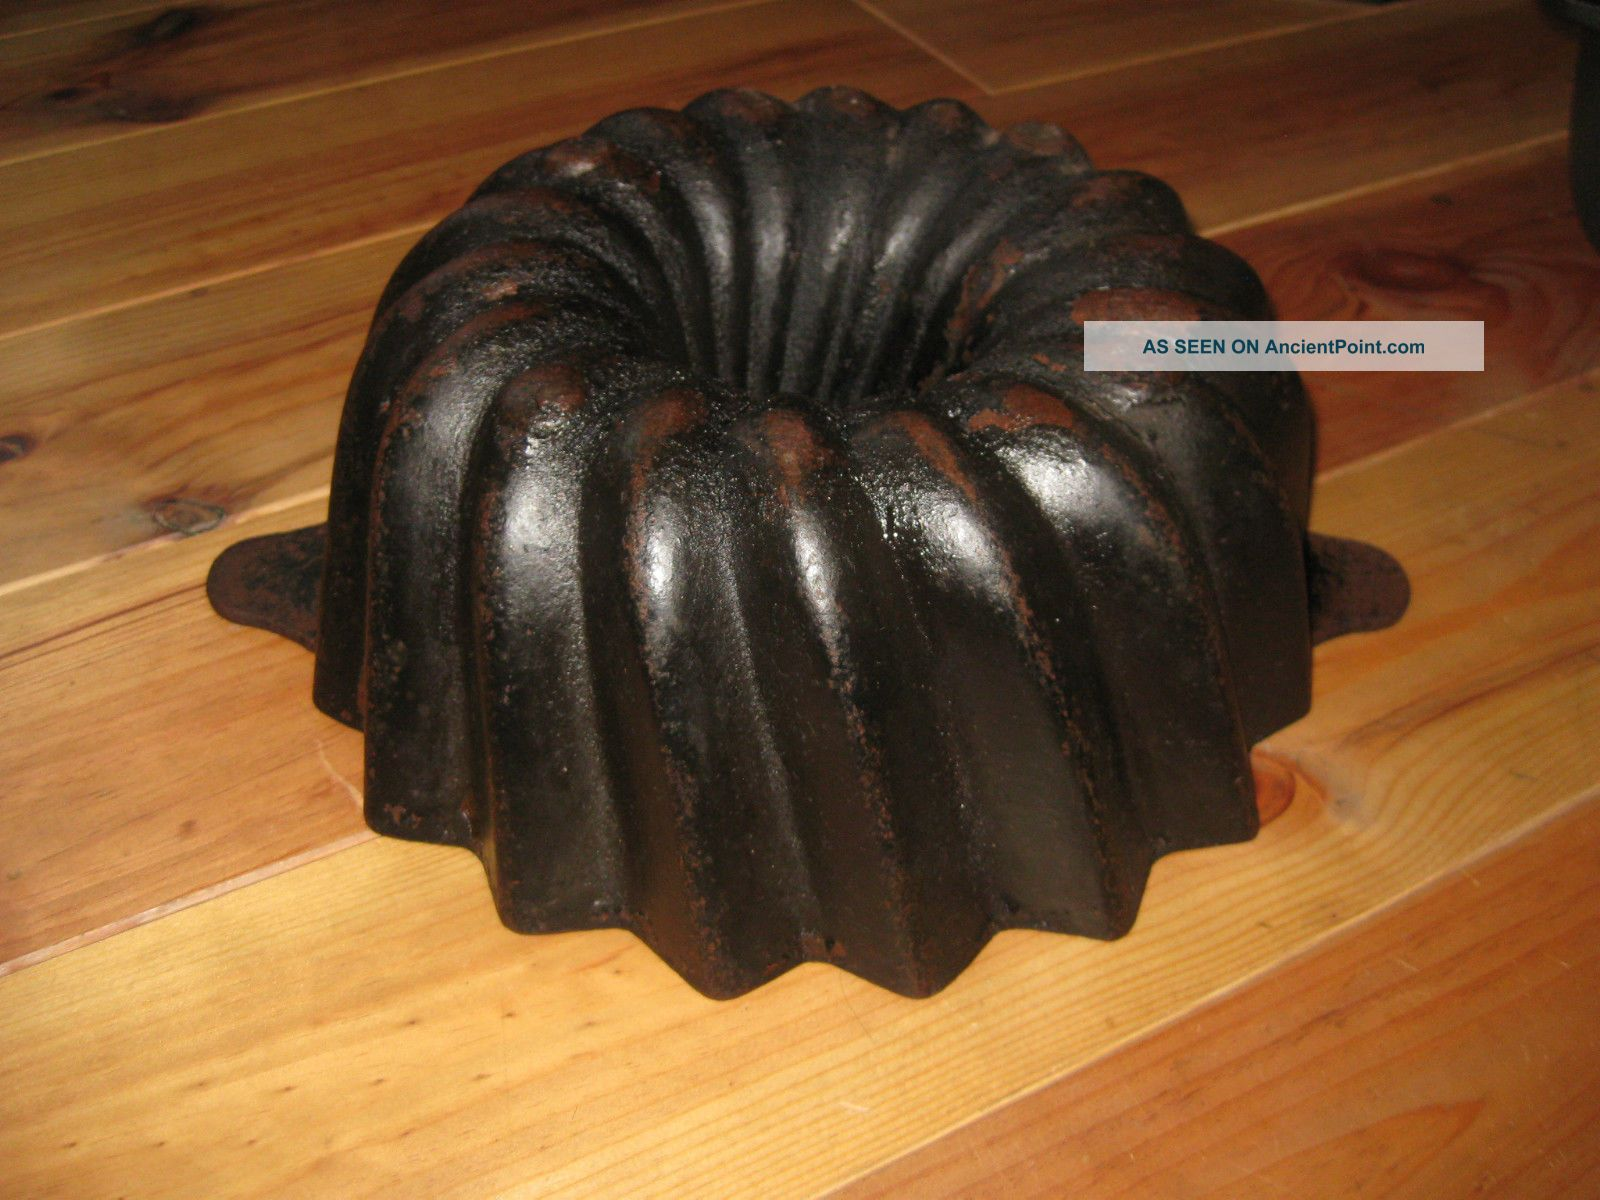 Big Antique Cast Iron Bundt Pan From Germany,  Good 3642 G Other Antique Home & Hearth photo